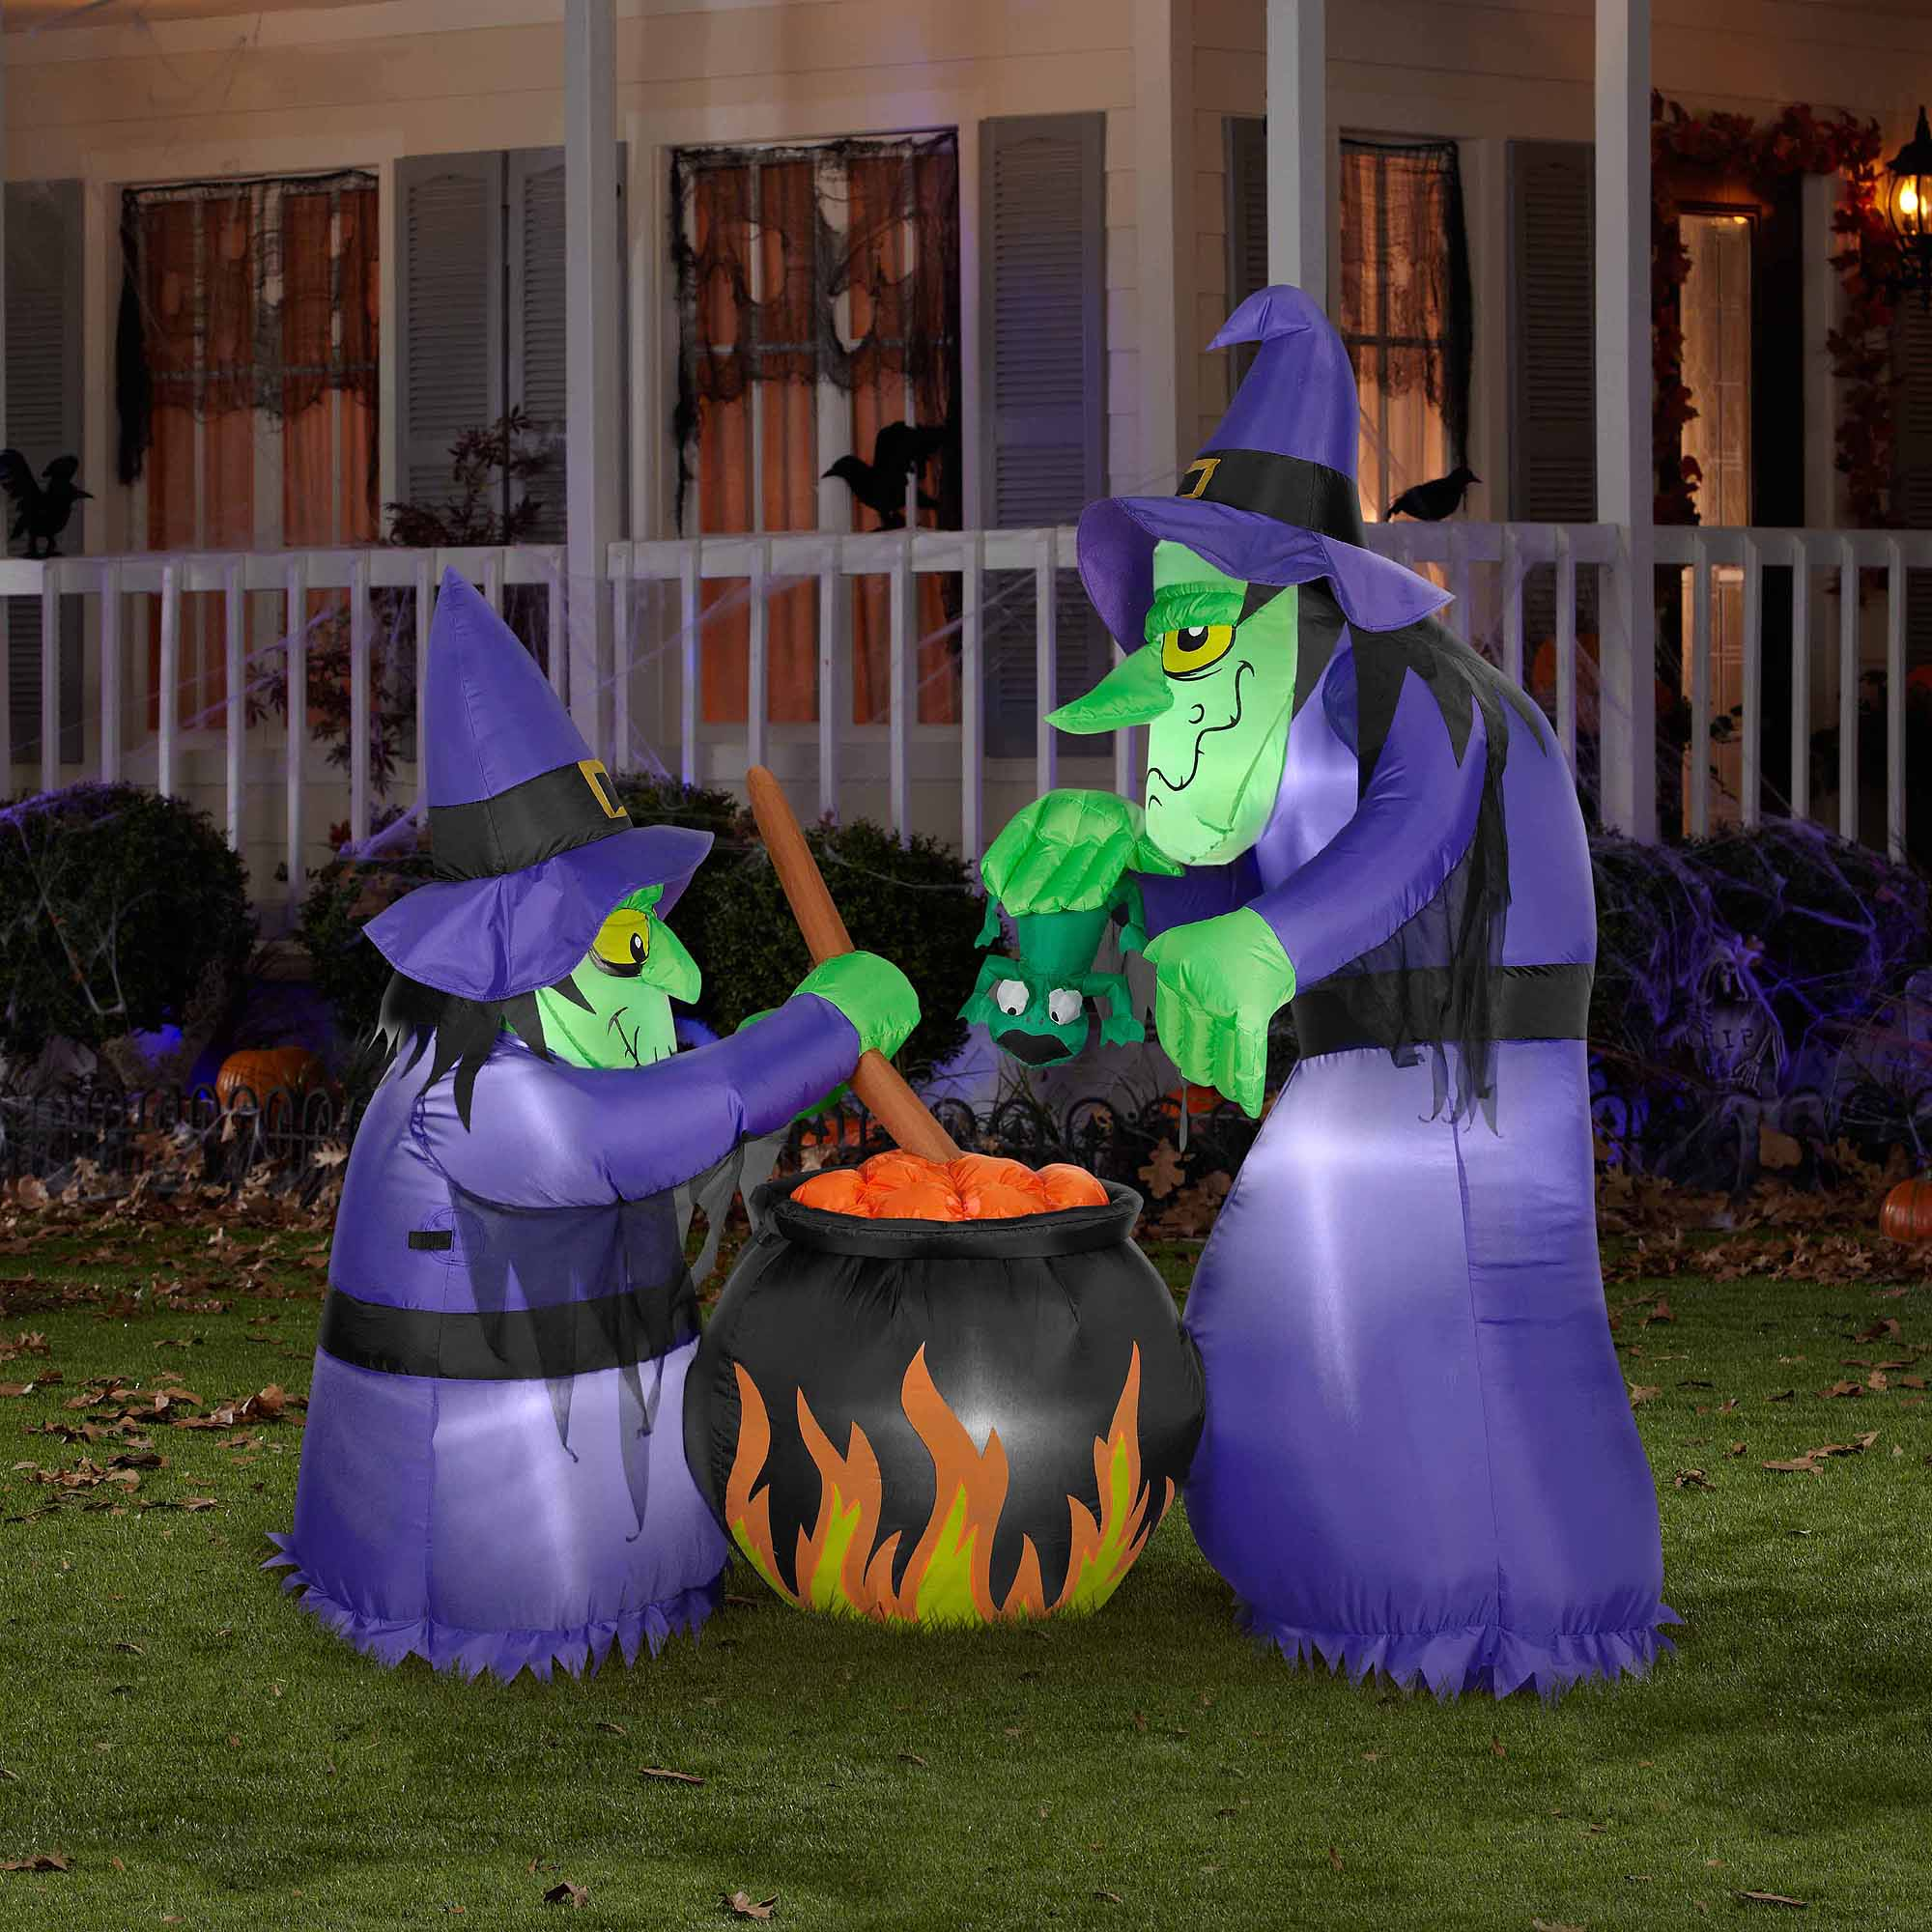 gemmy 6h x 4w airblown halloween inflatable double bubble witches with cauldron walmartcom - Halloween Inflatables Clearance